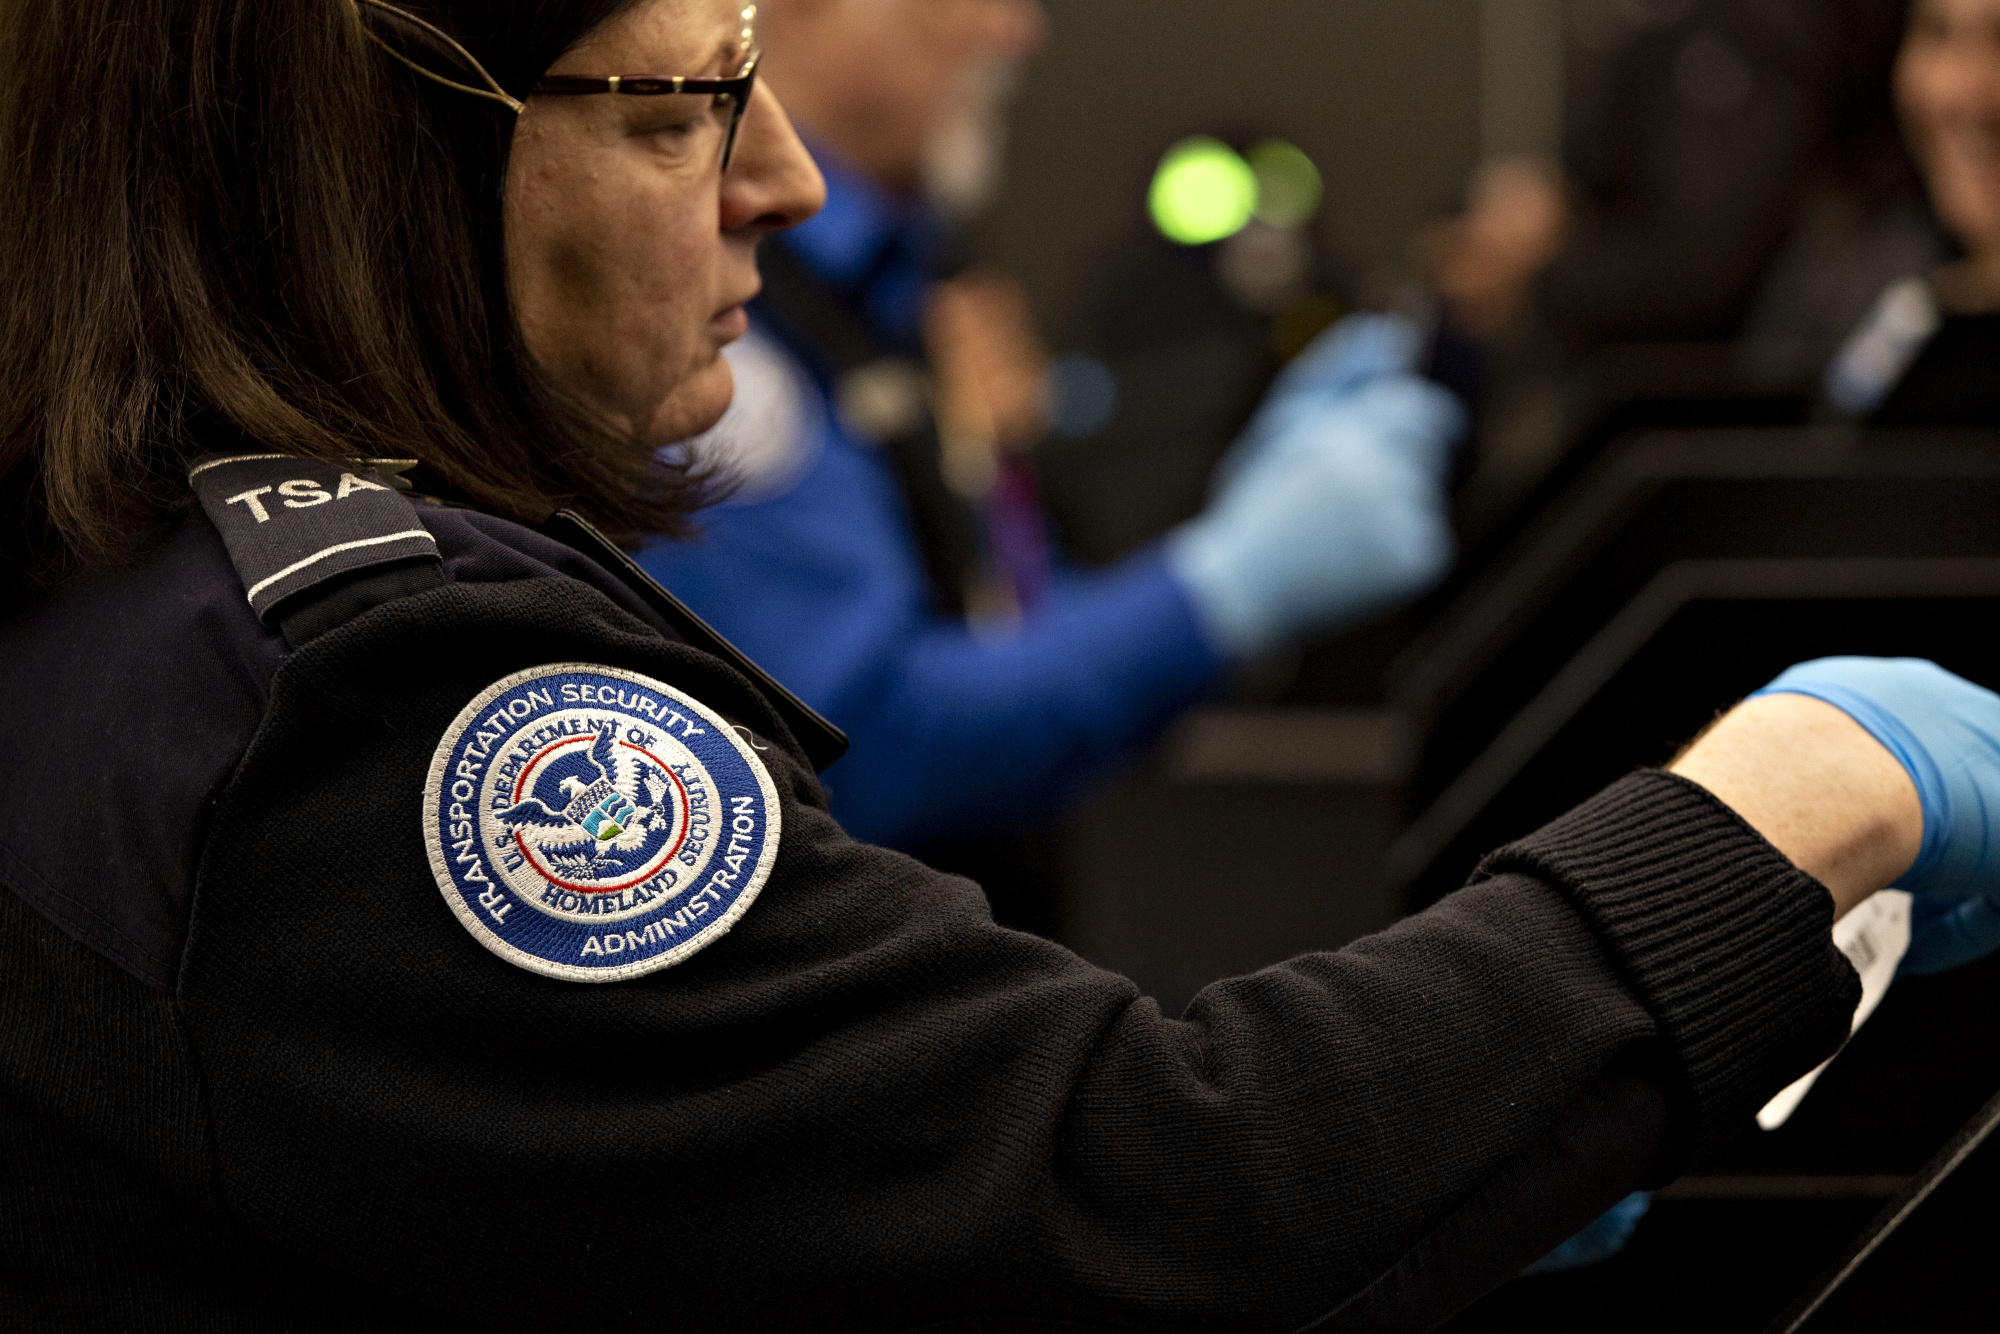 bloomberg.com - Alan Levin - More Unpaid TSA Screeners Are Citing Financial Hardship for Missing Work